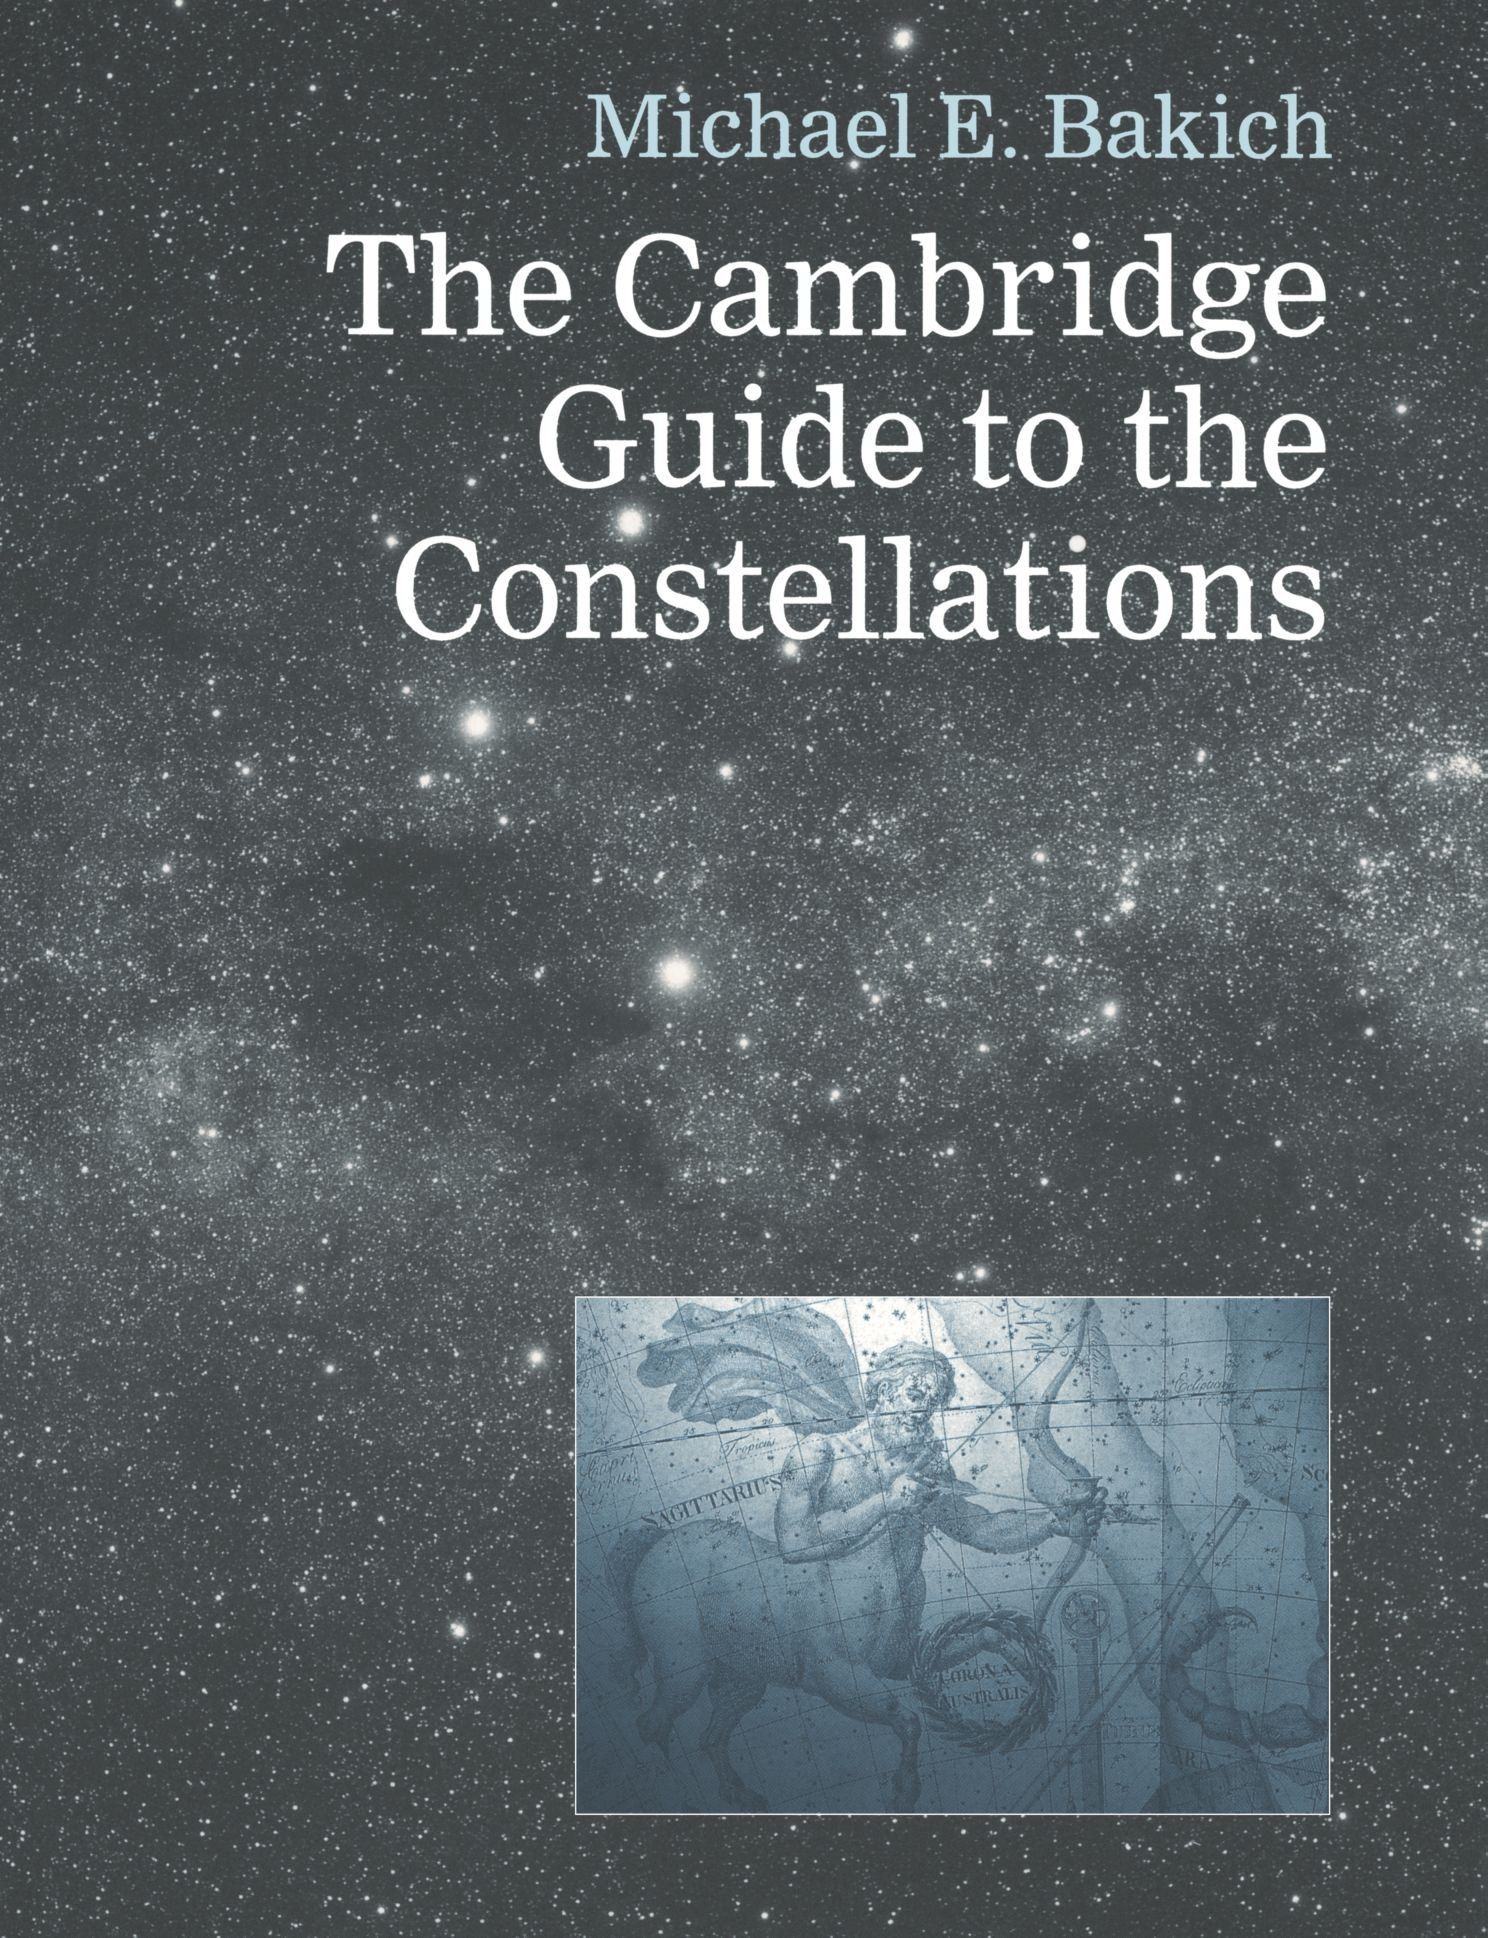 book cover for the cambridge guide to the constellations by michael e bakich